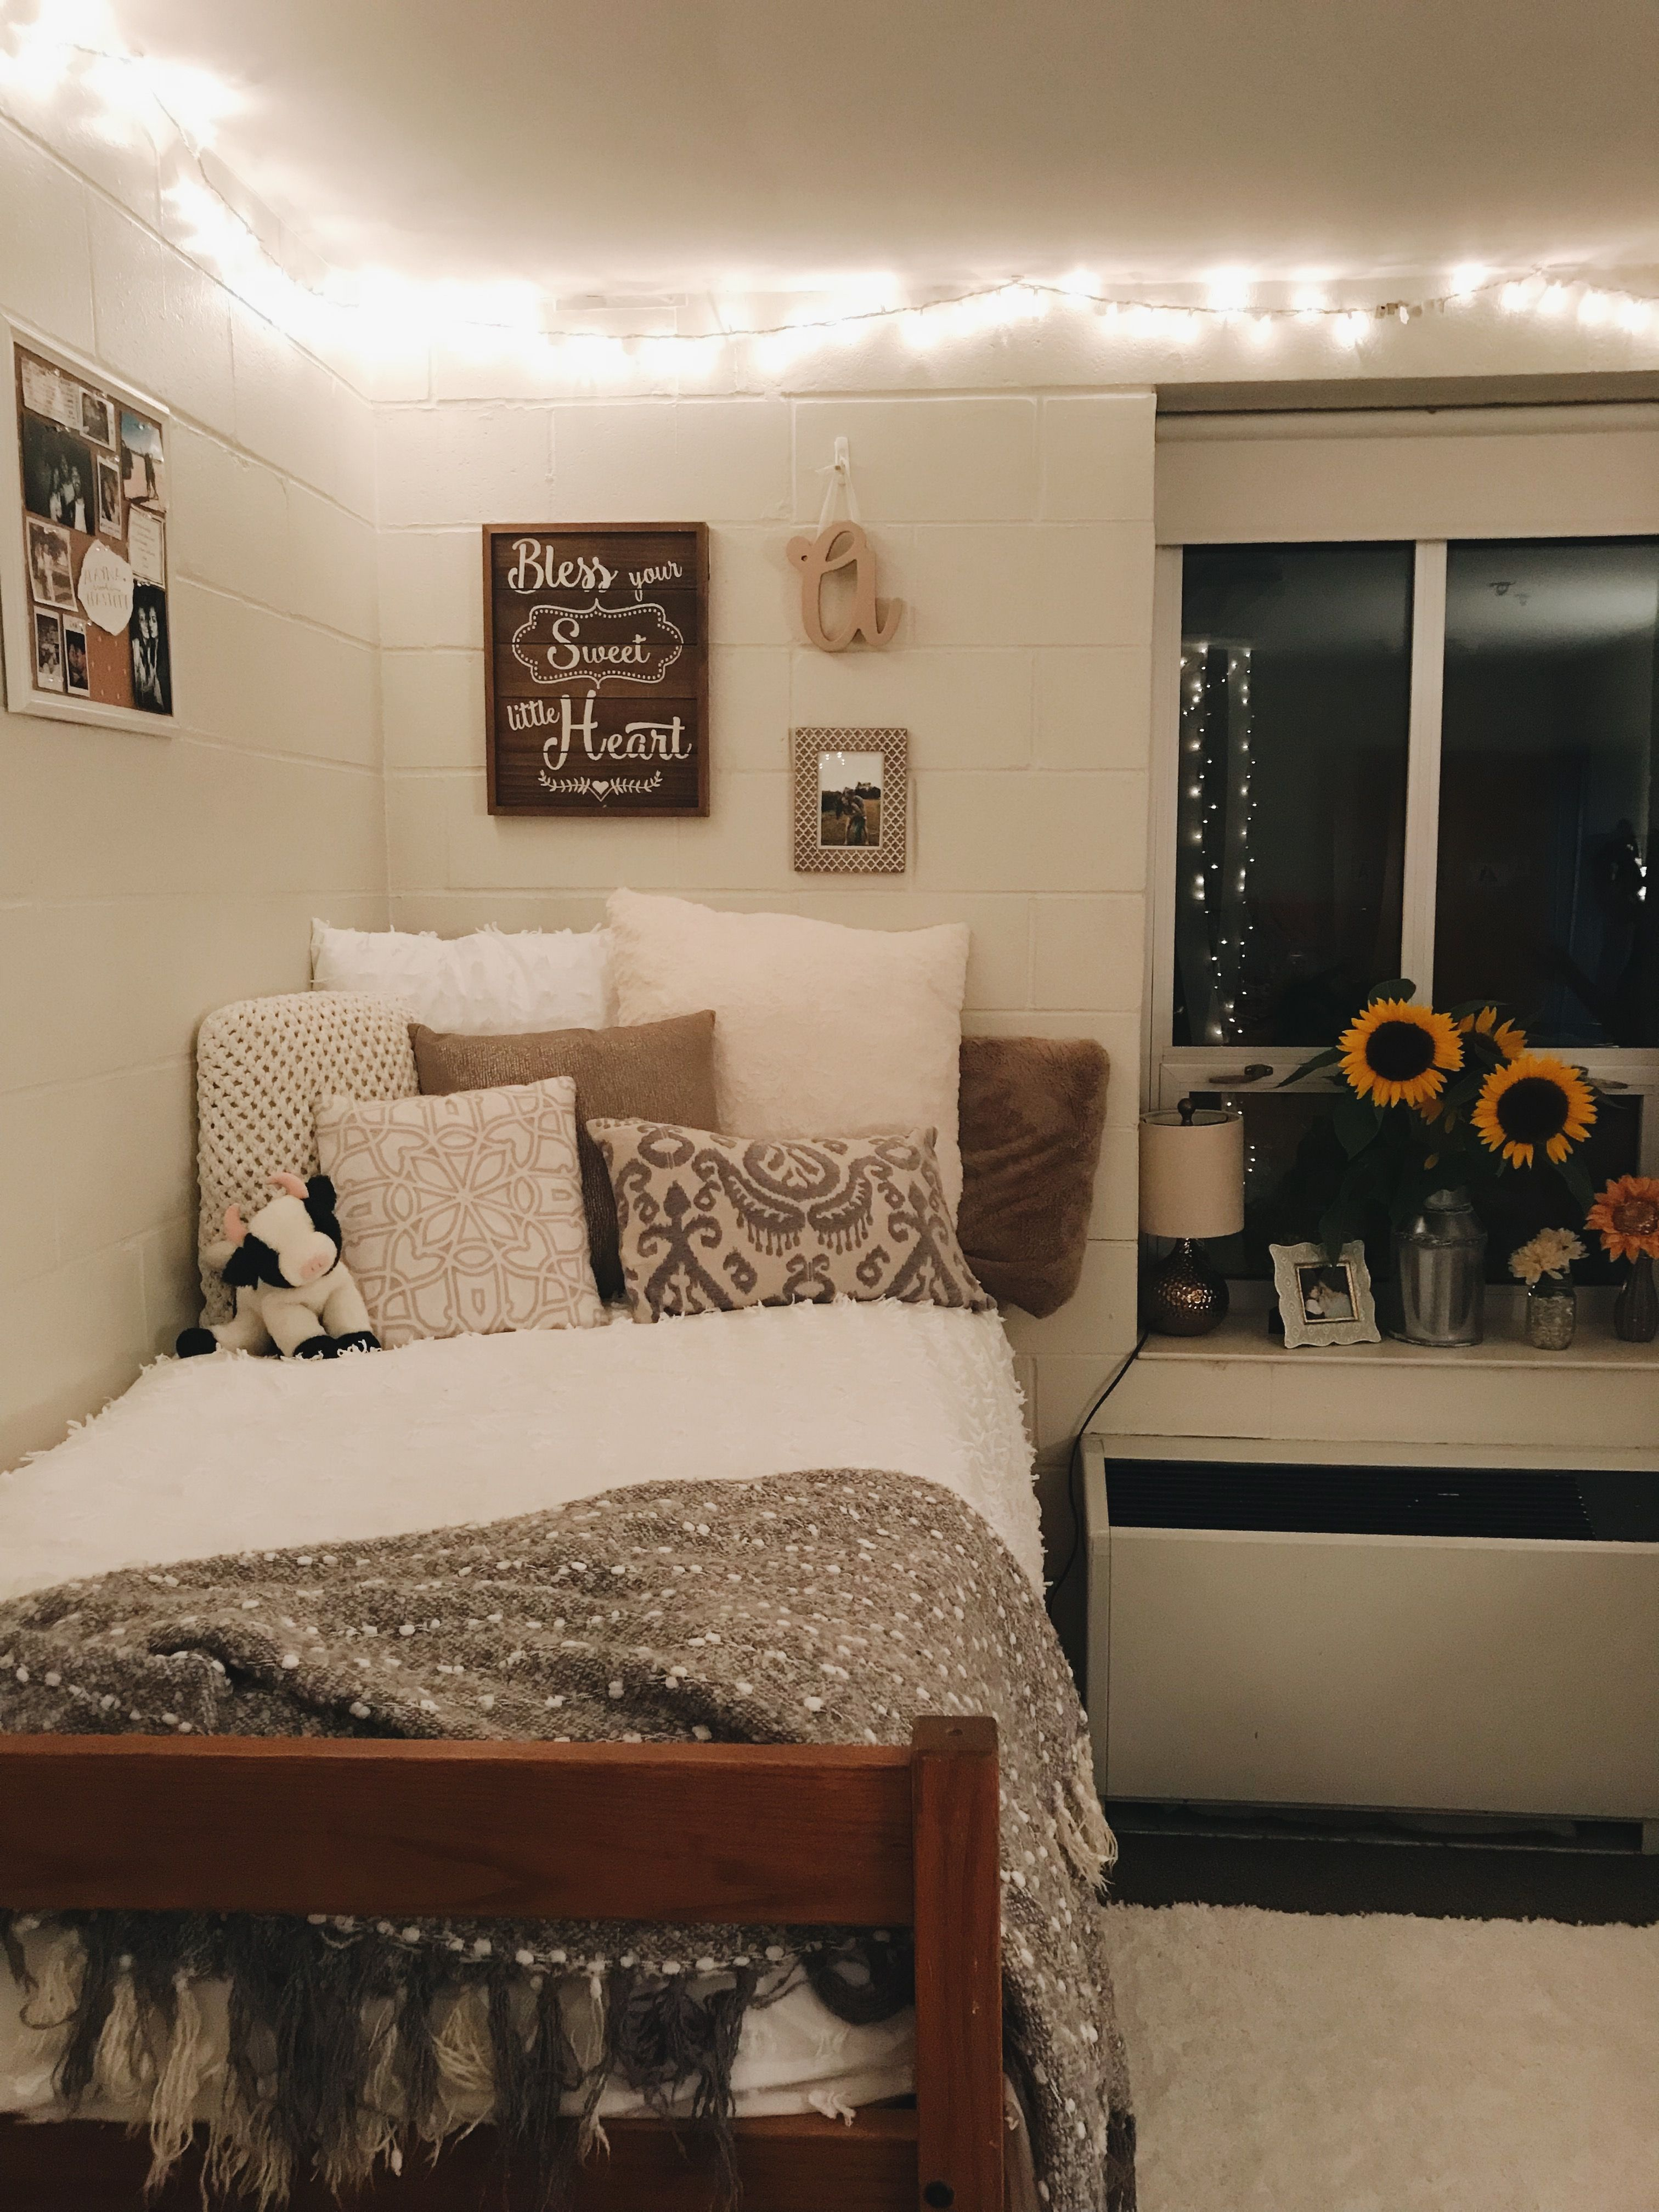 Dorm life college decorations quartos tumblr dormitory also best bedroom dorms images in diy ideas for home rh pinterest